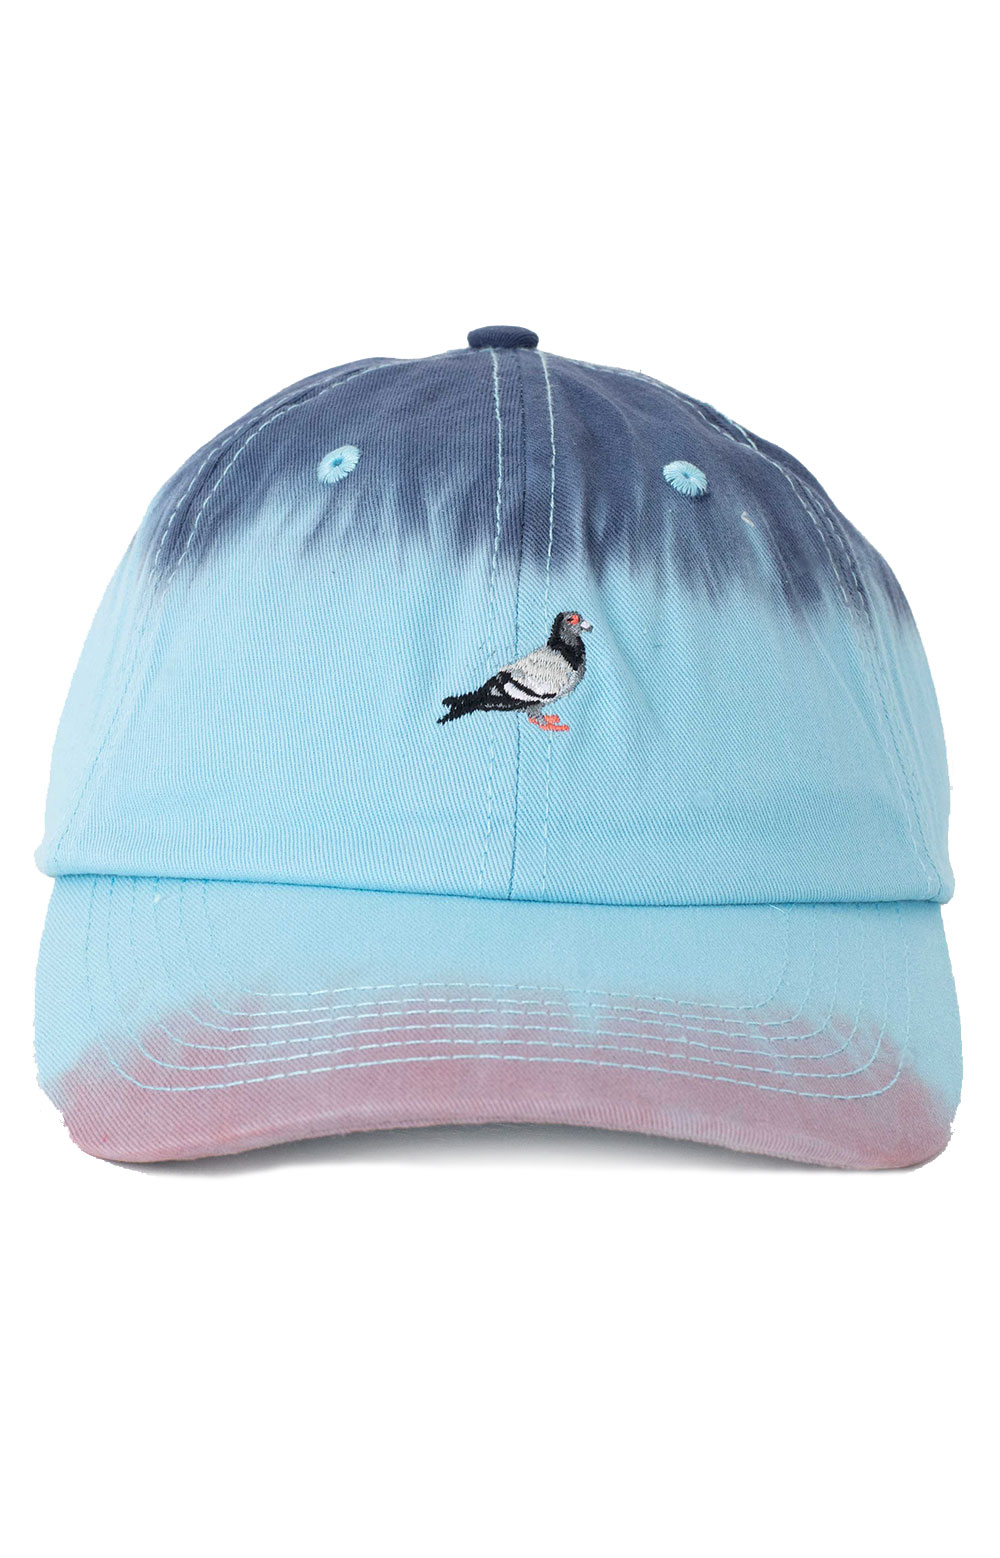 Dyed Panel Dad Hat - Teal  2